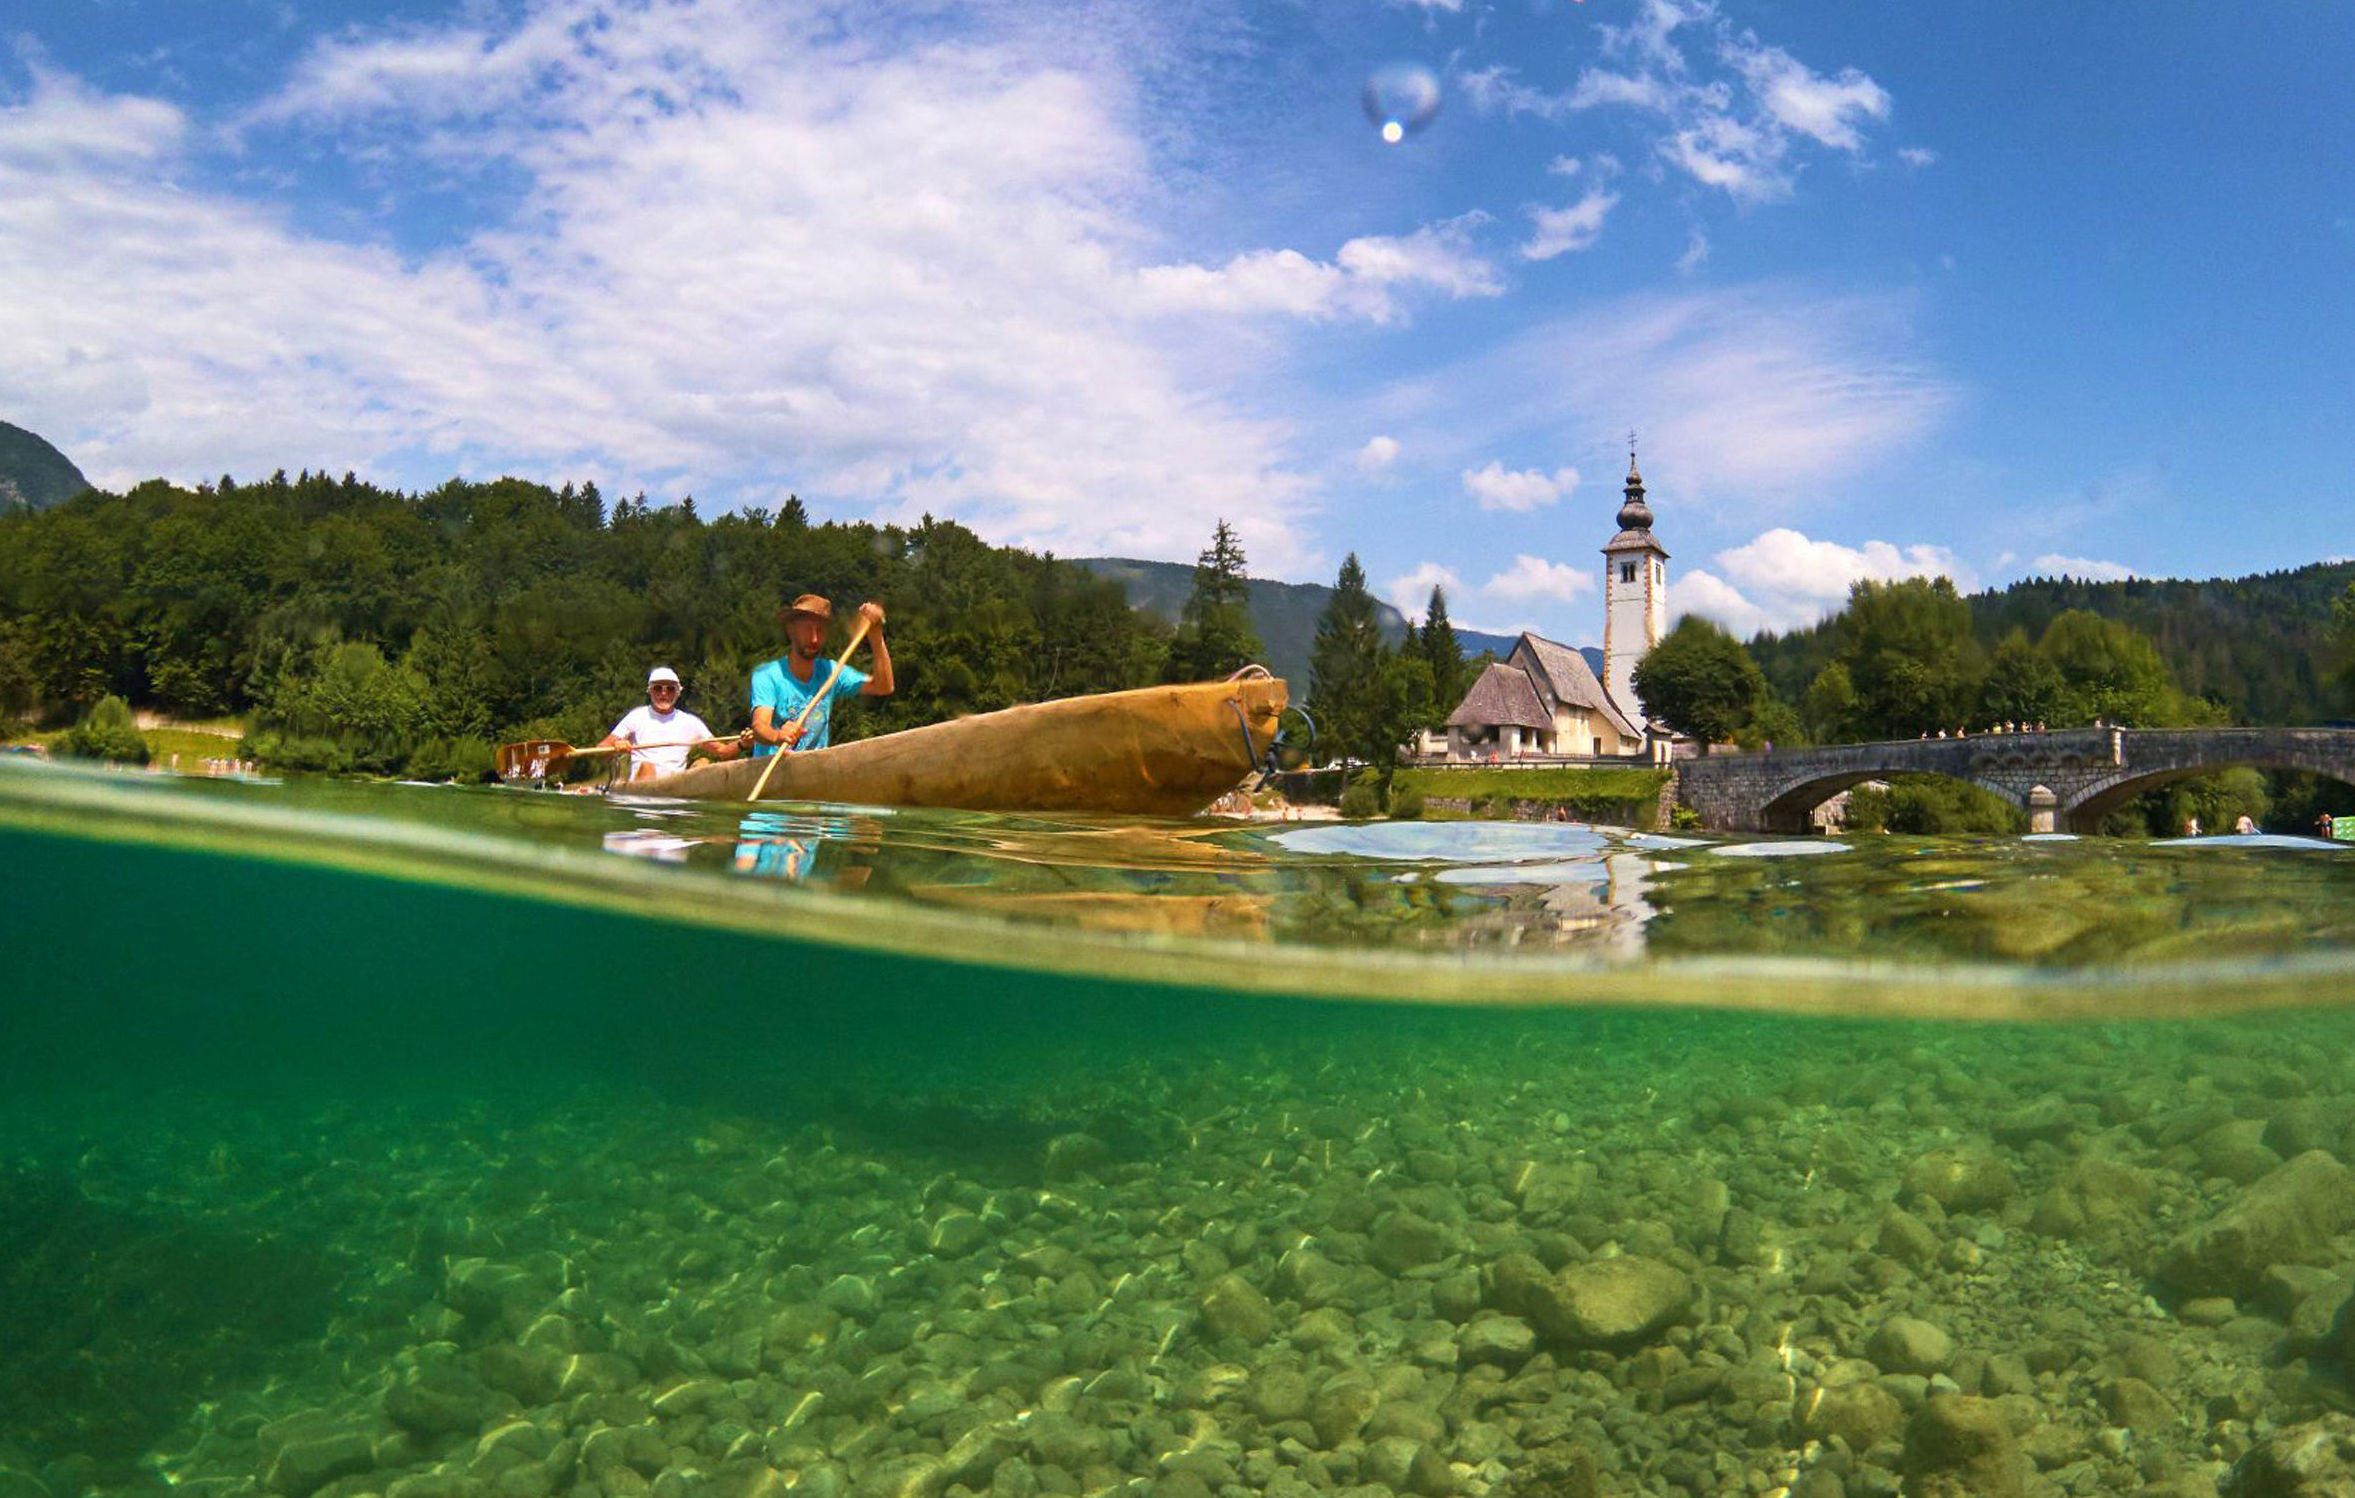 It is hard to imagine how many pictures are taken on the banks of Lake Bohinj each year Photograph: PA/Visit Slovenia